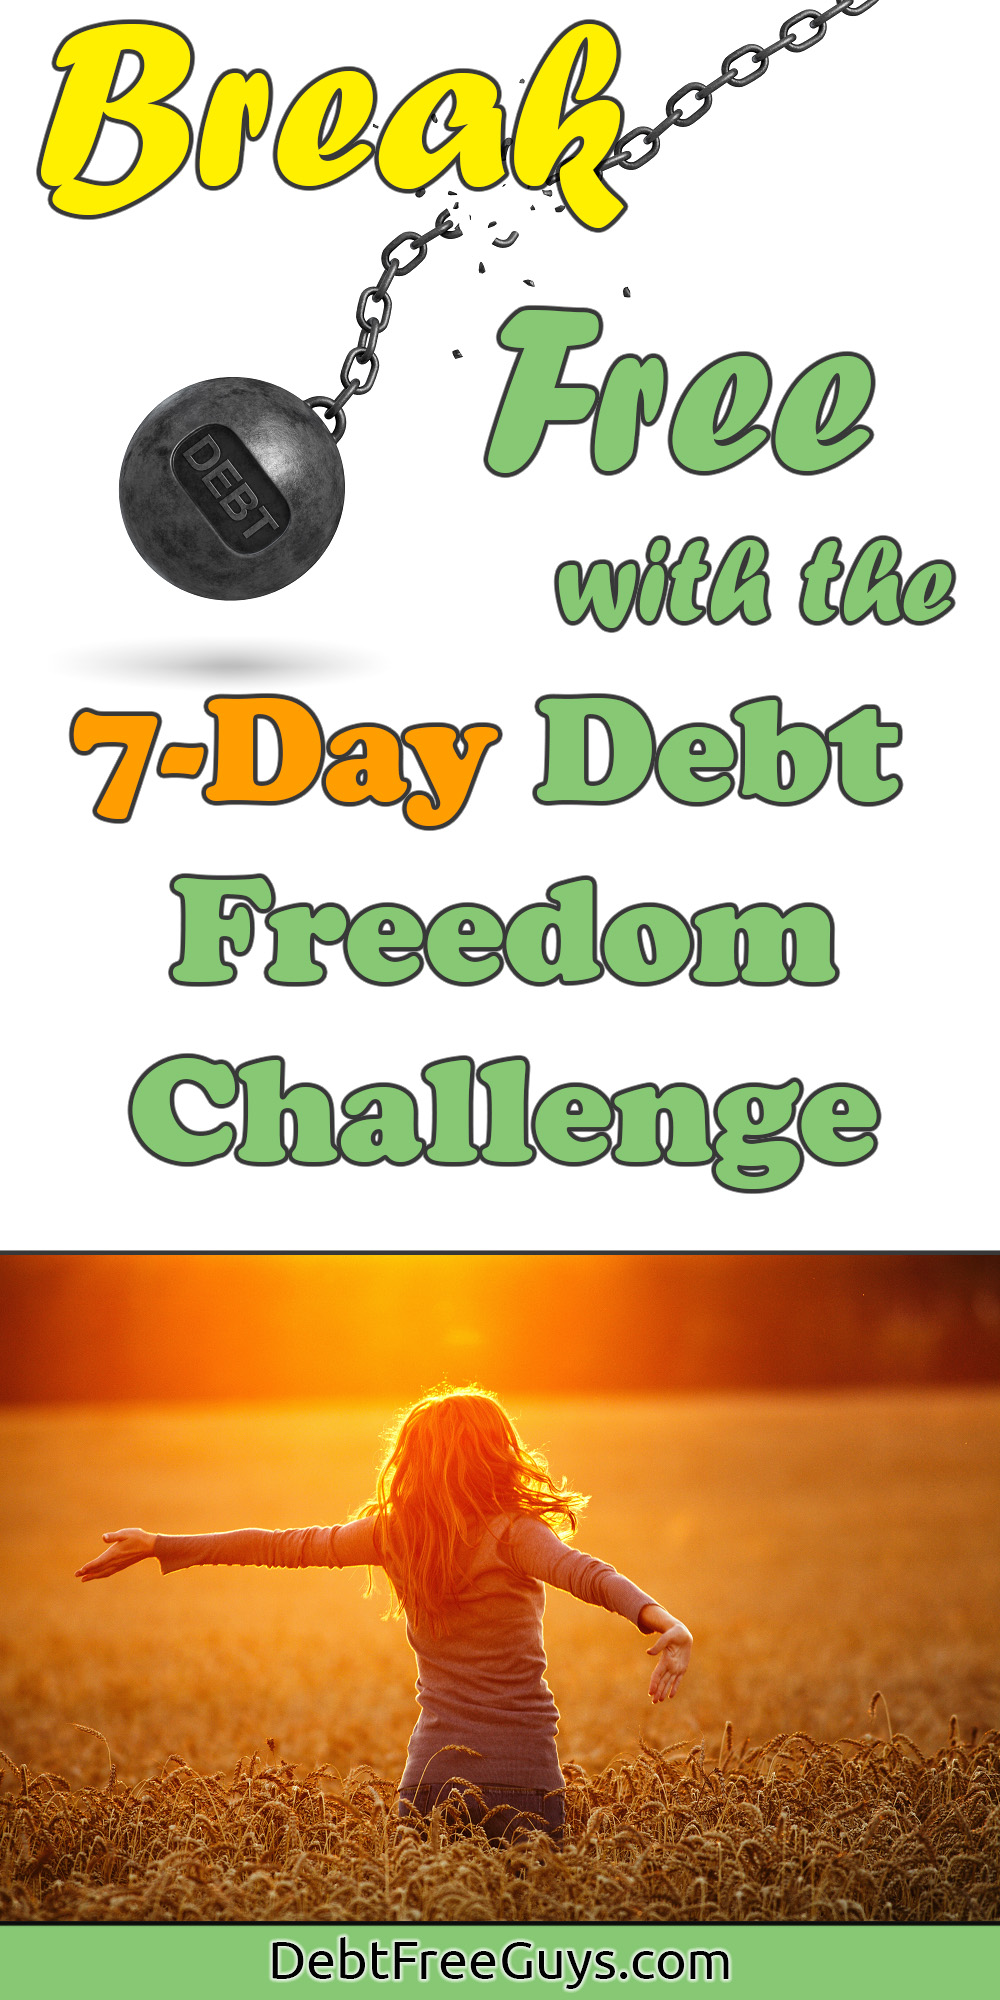 Take the 7-Day Debt Freedom Challenge and start becoming debt free today. This week is the week you take back control of your money and start being free. Take it with a friend and spread debt freedom.